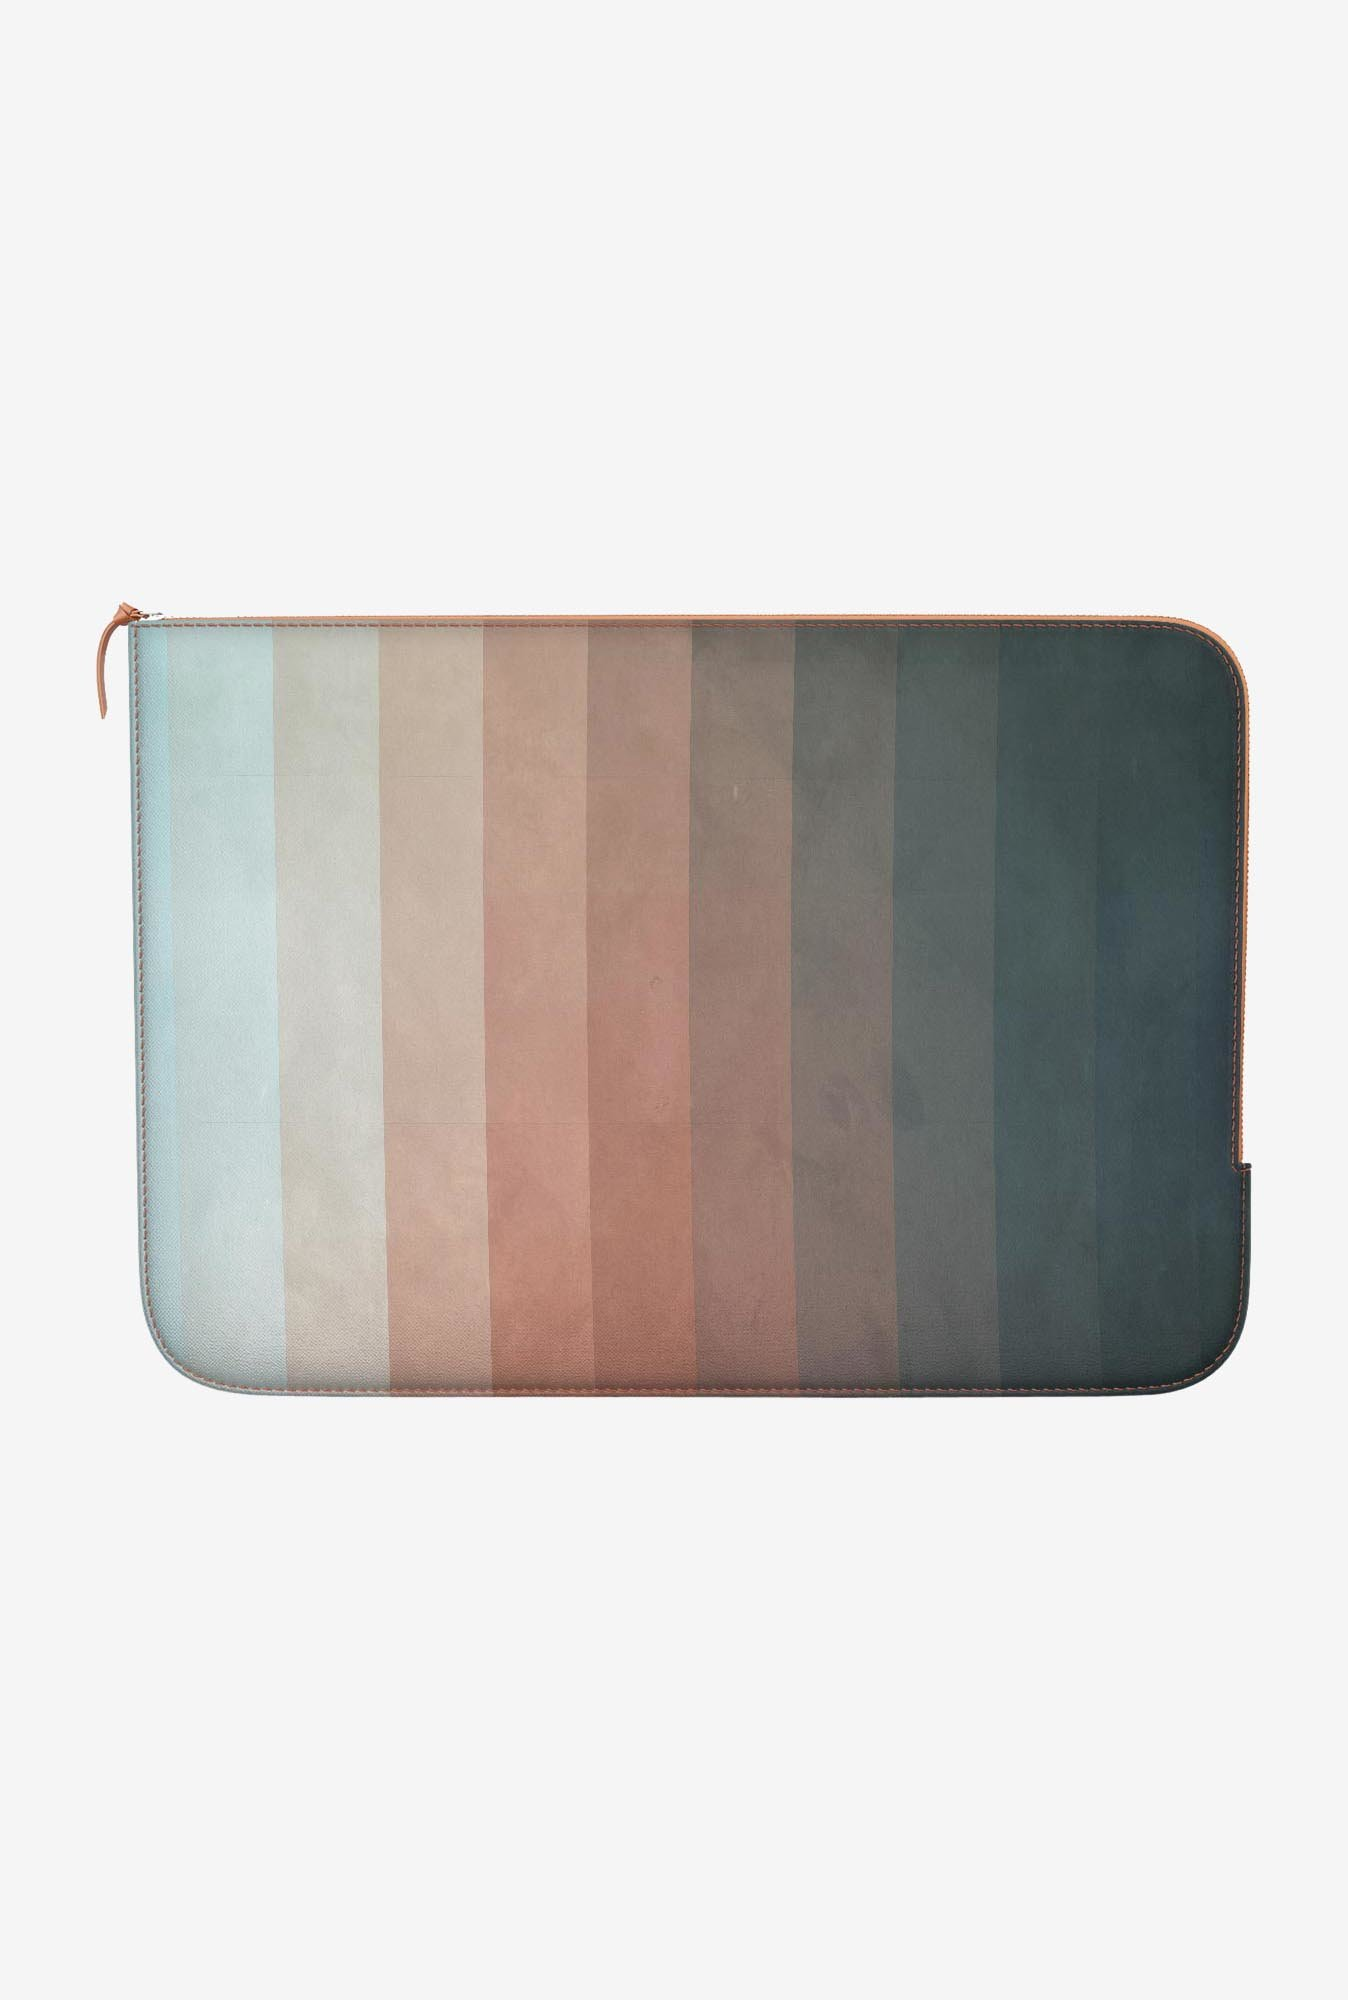 DailyObjects vylwwlyss MacBook Pro 15 Zippered Sleeve